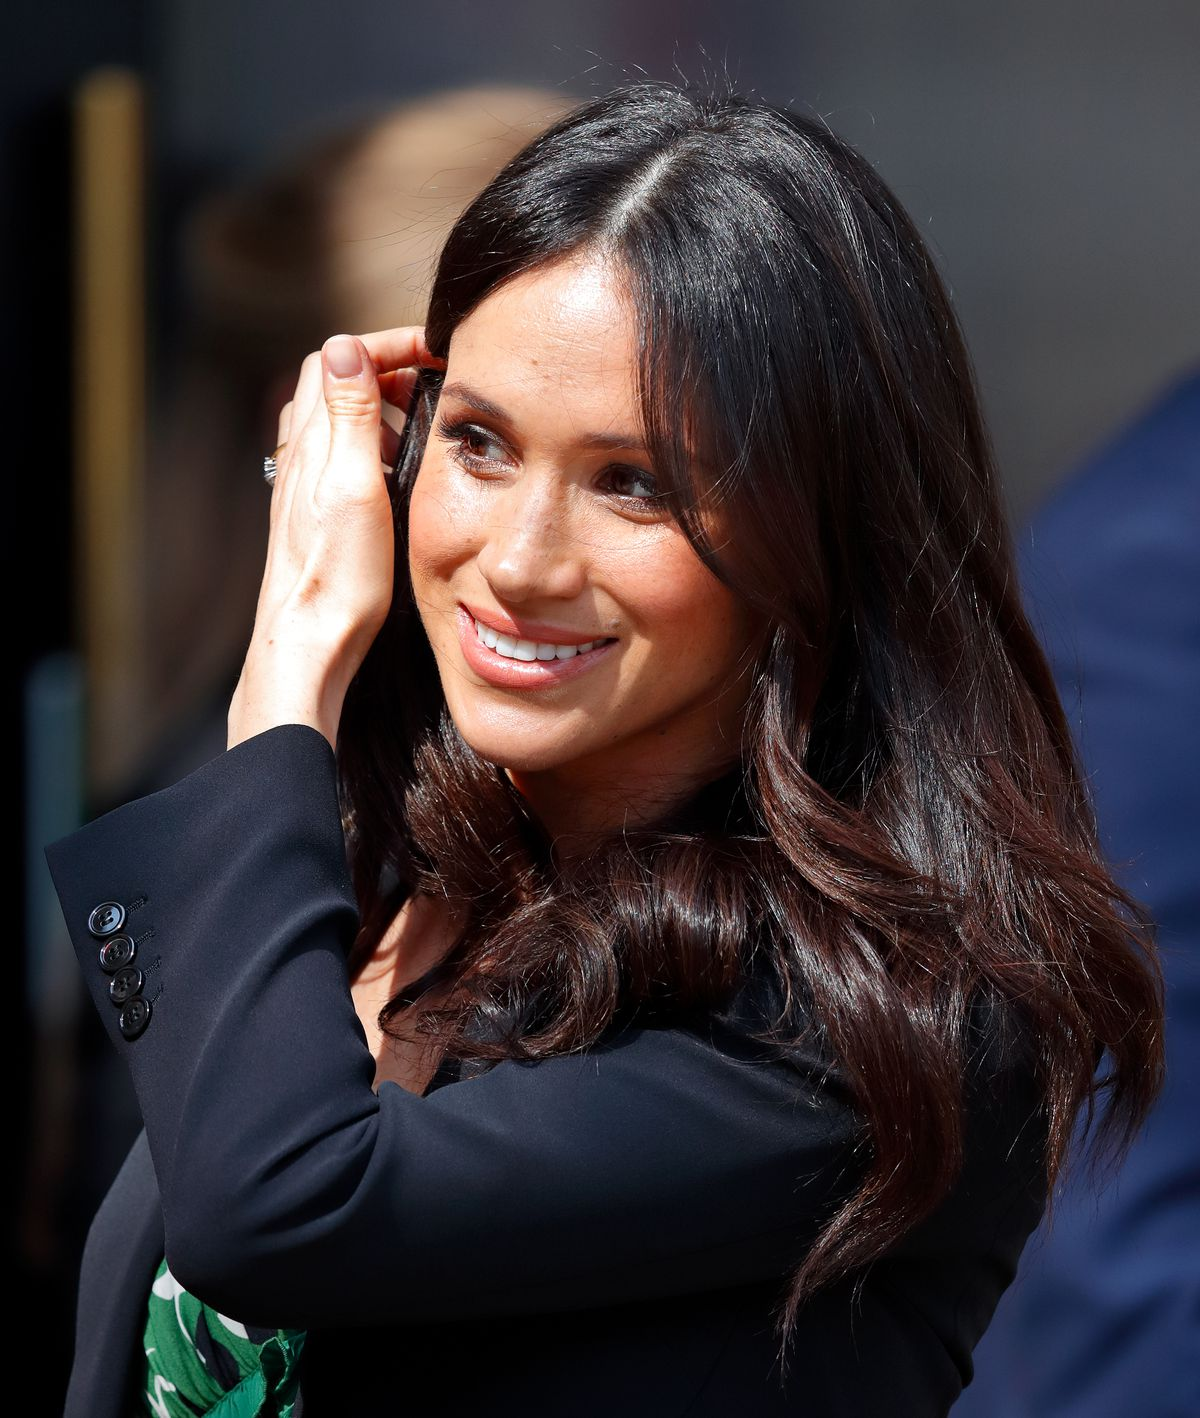 Meghan Markle's Beauty Products, Thoroughly Investigated